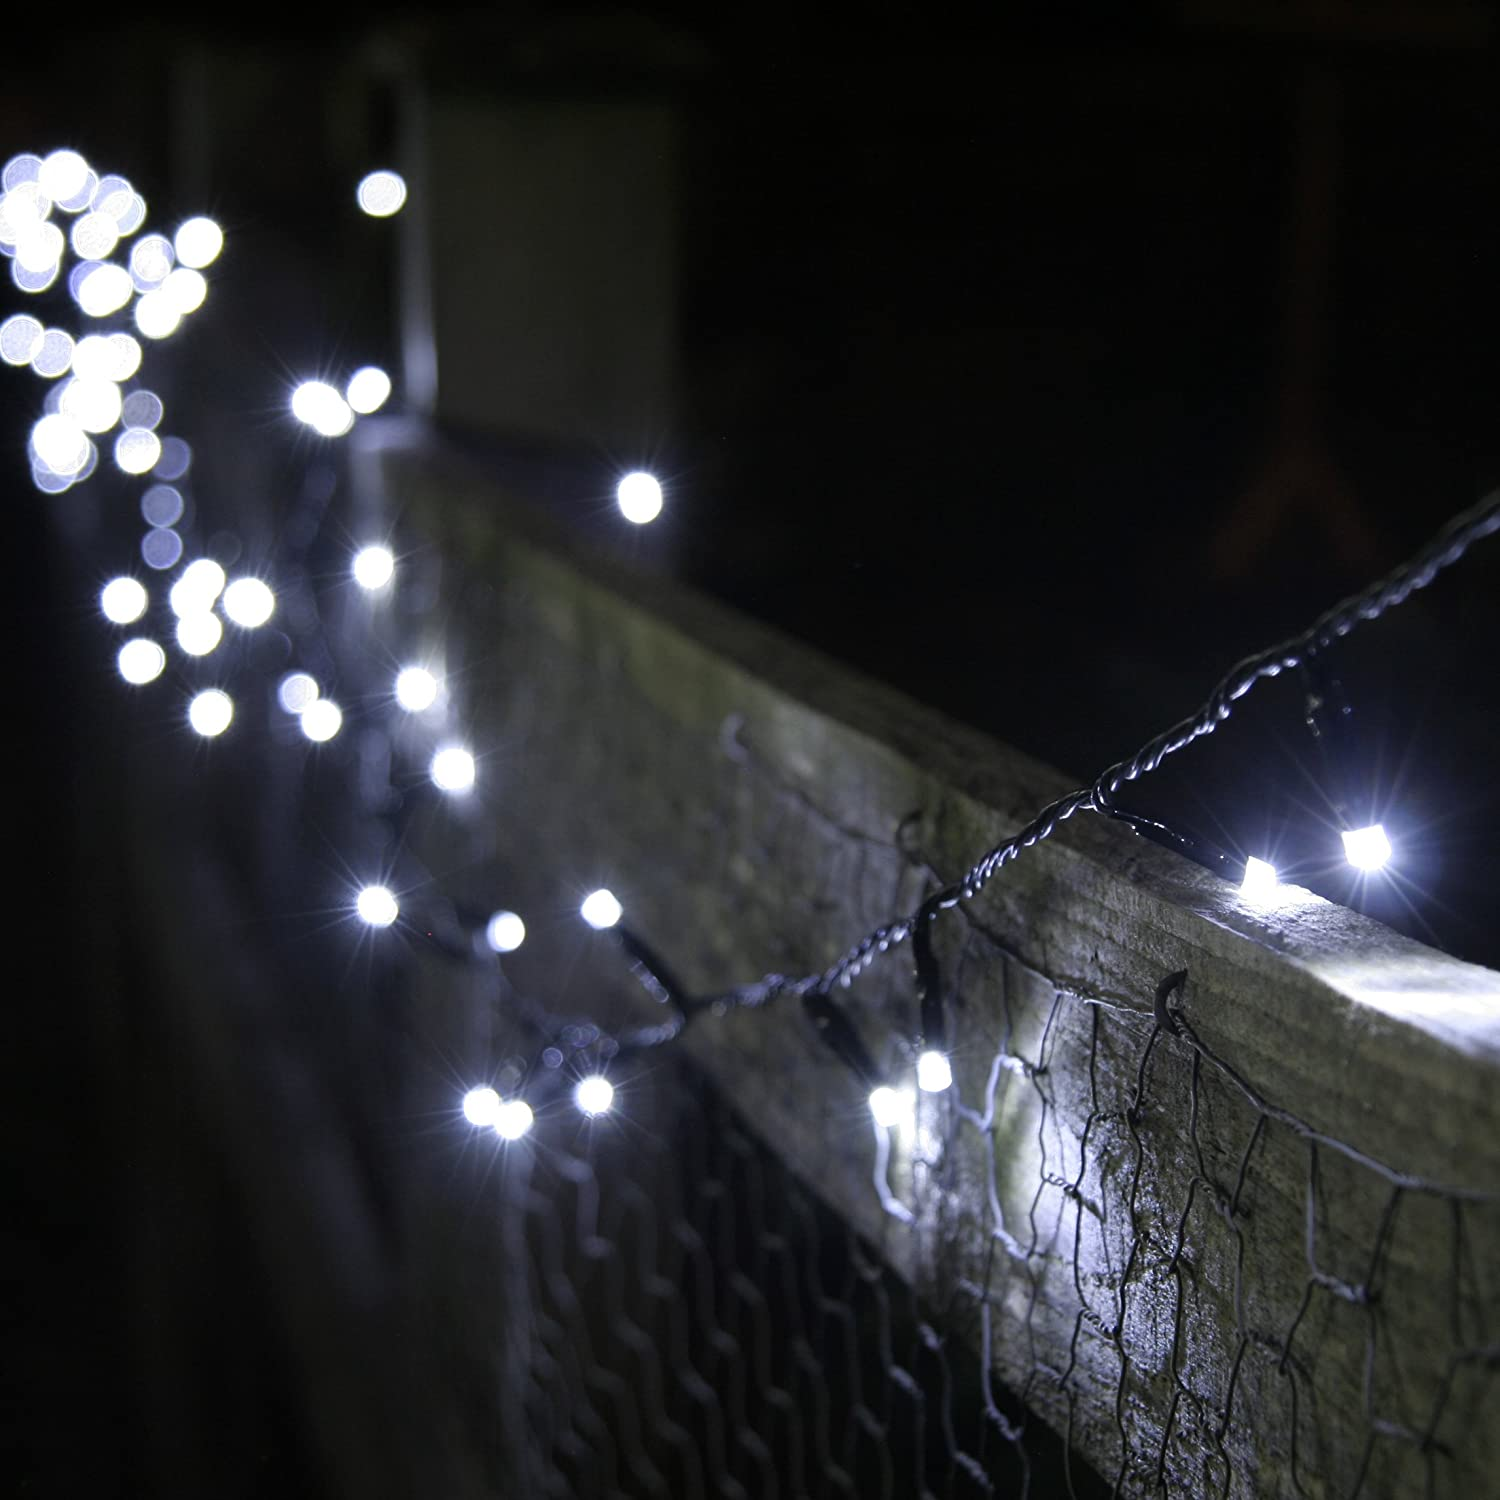 Outdoor Fairy Lighting Lights4fun 100 warm white led solar powered garden fairy lights lights4fun 100 warm white led solar powered garden fairy lights amazon garden outdoors workwithnaturefo